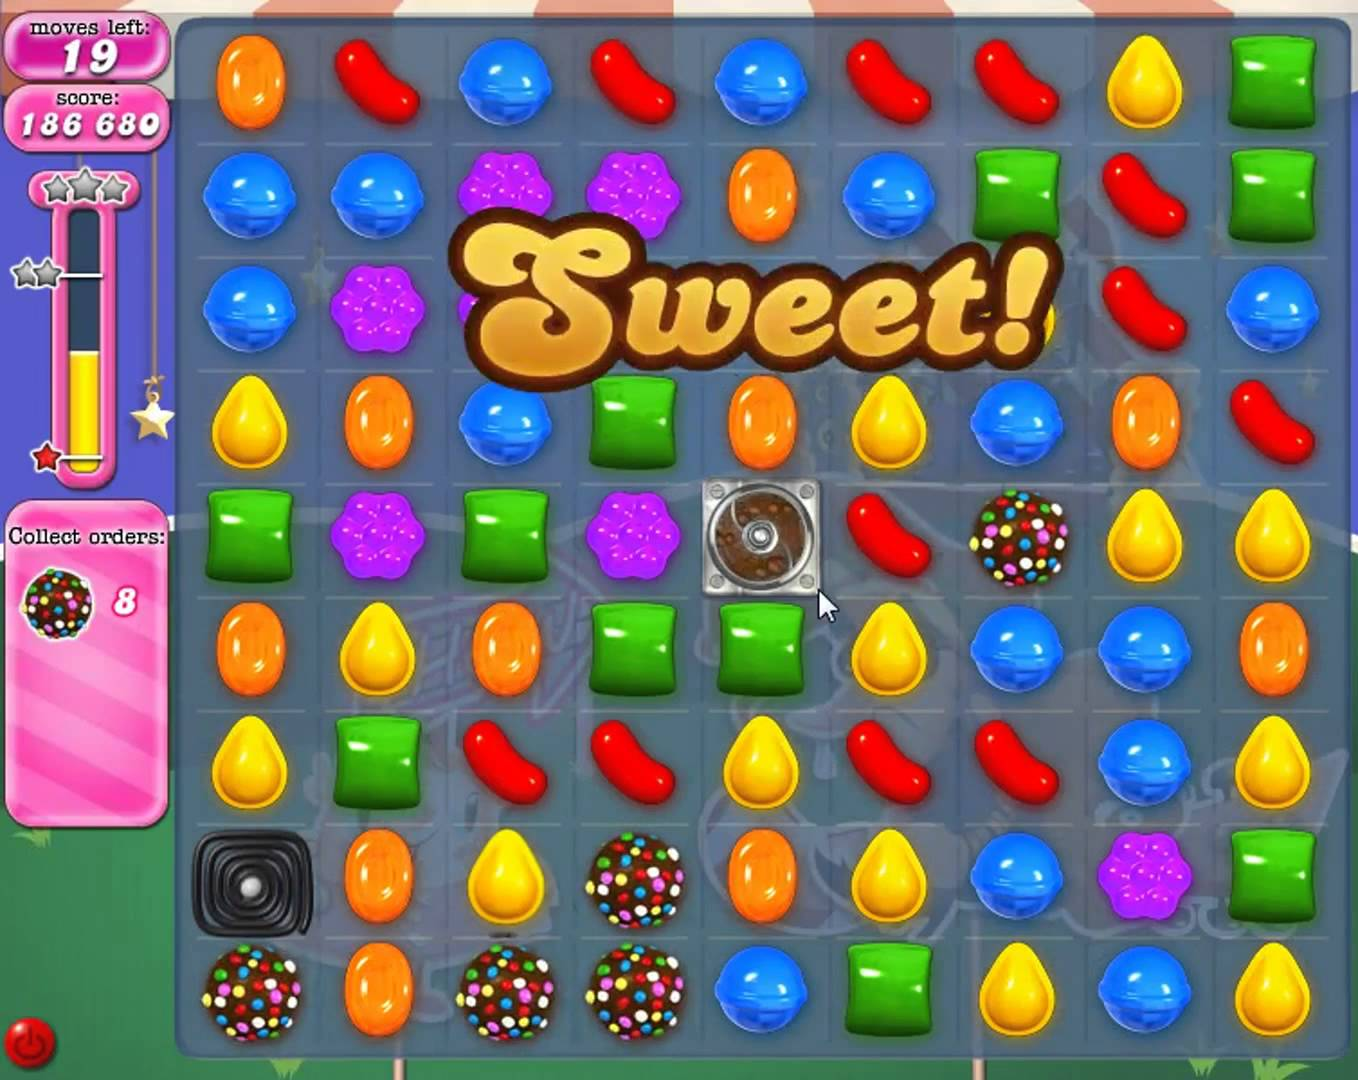 how Candycrush got its first 10,000 users